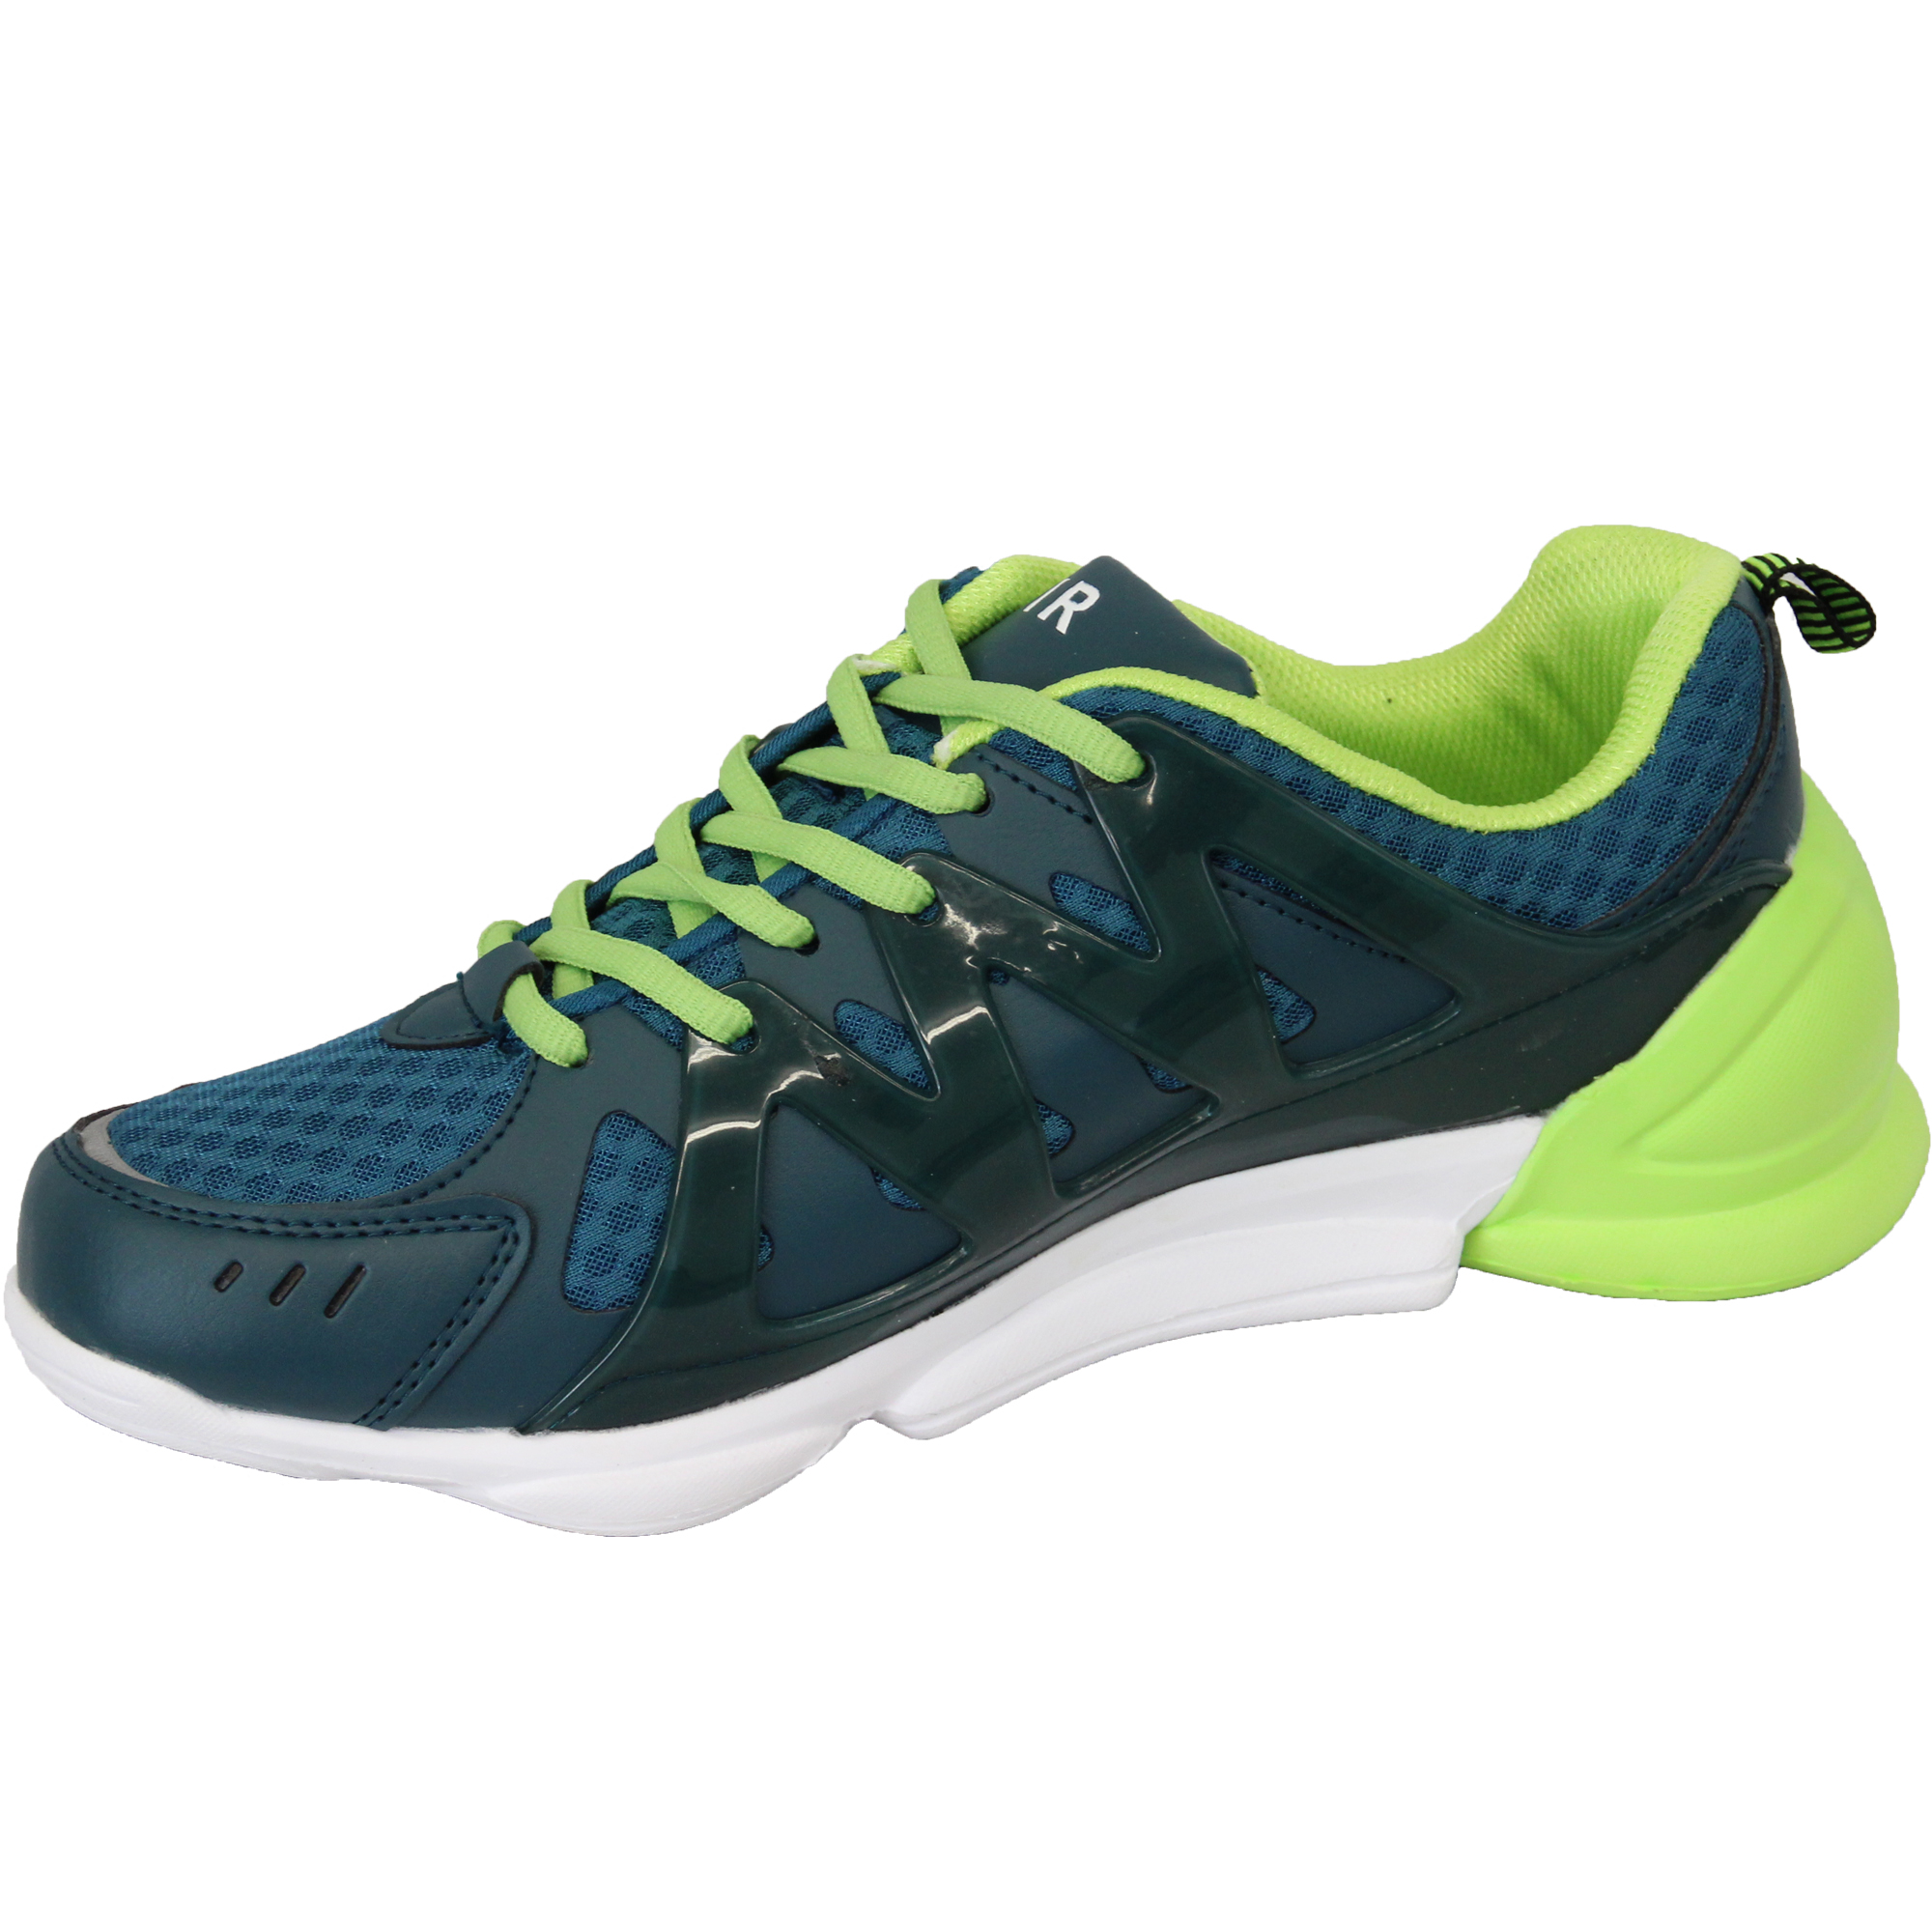 Mens-Trainers-Air-Tech-Shoes-Jogging-Lace-Up-Walking-Running-Sports-Gym-Mesh-New thumbnail 4